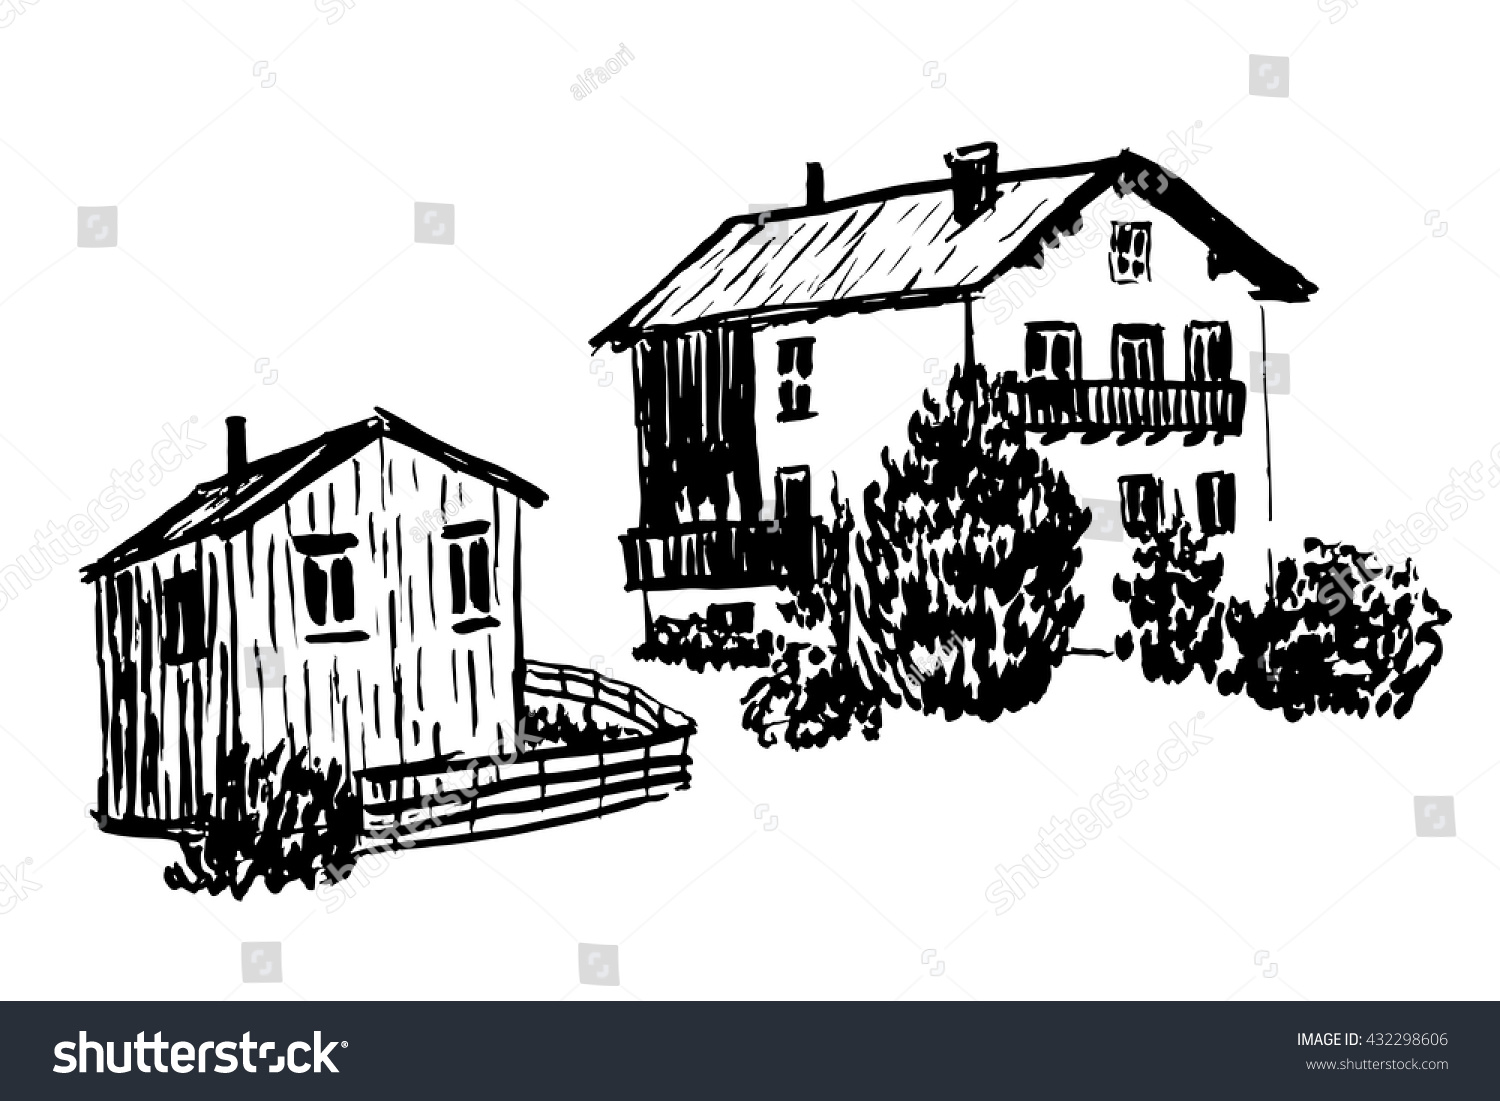 Drawing Elements Set Of Isolates Two Wooden Alpine Huts, The House And Barn  Sketch Hand